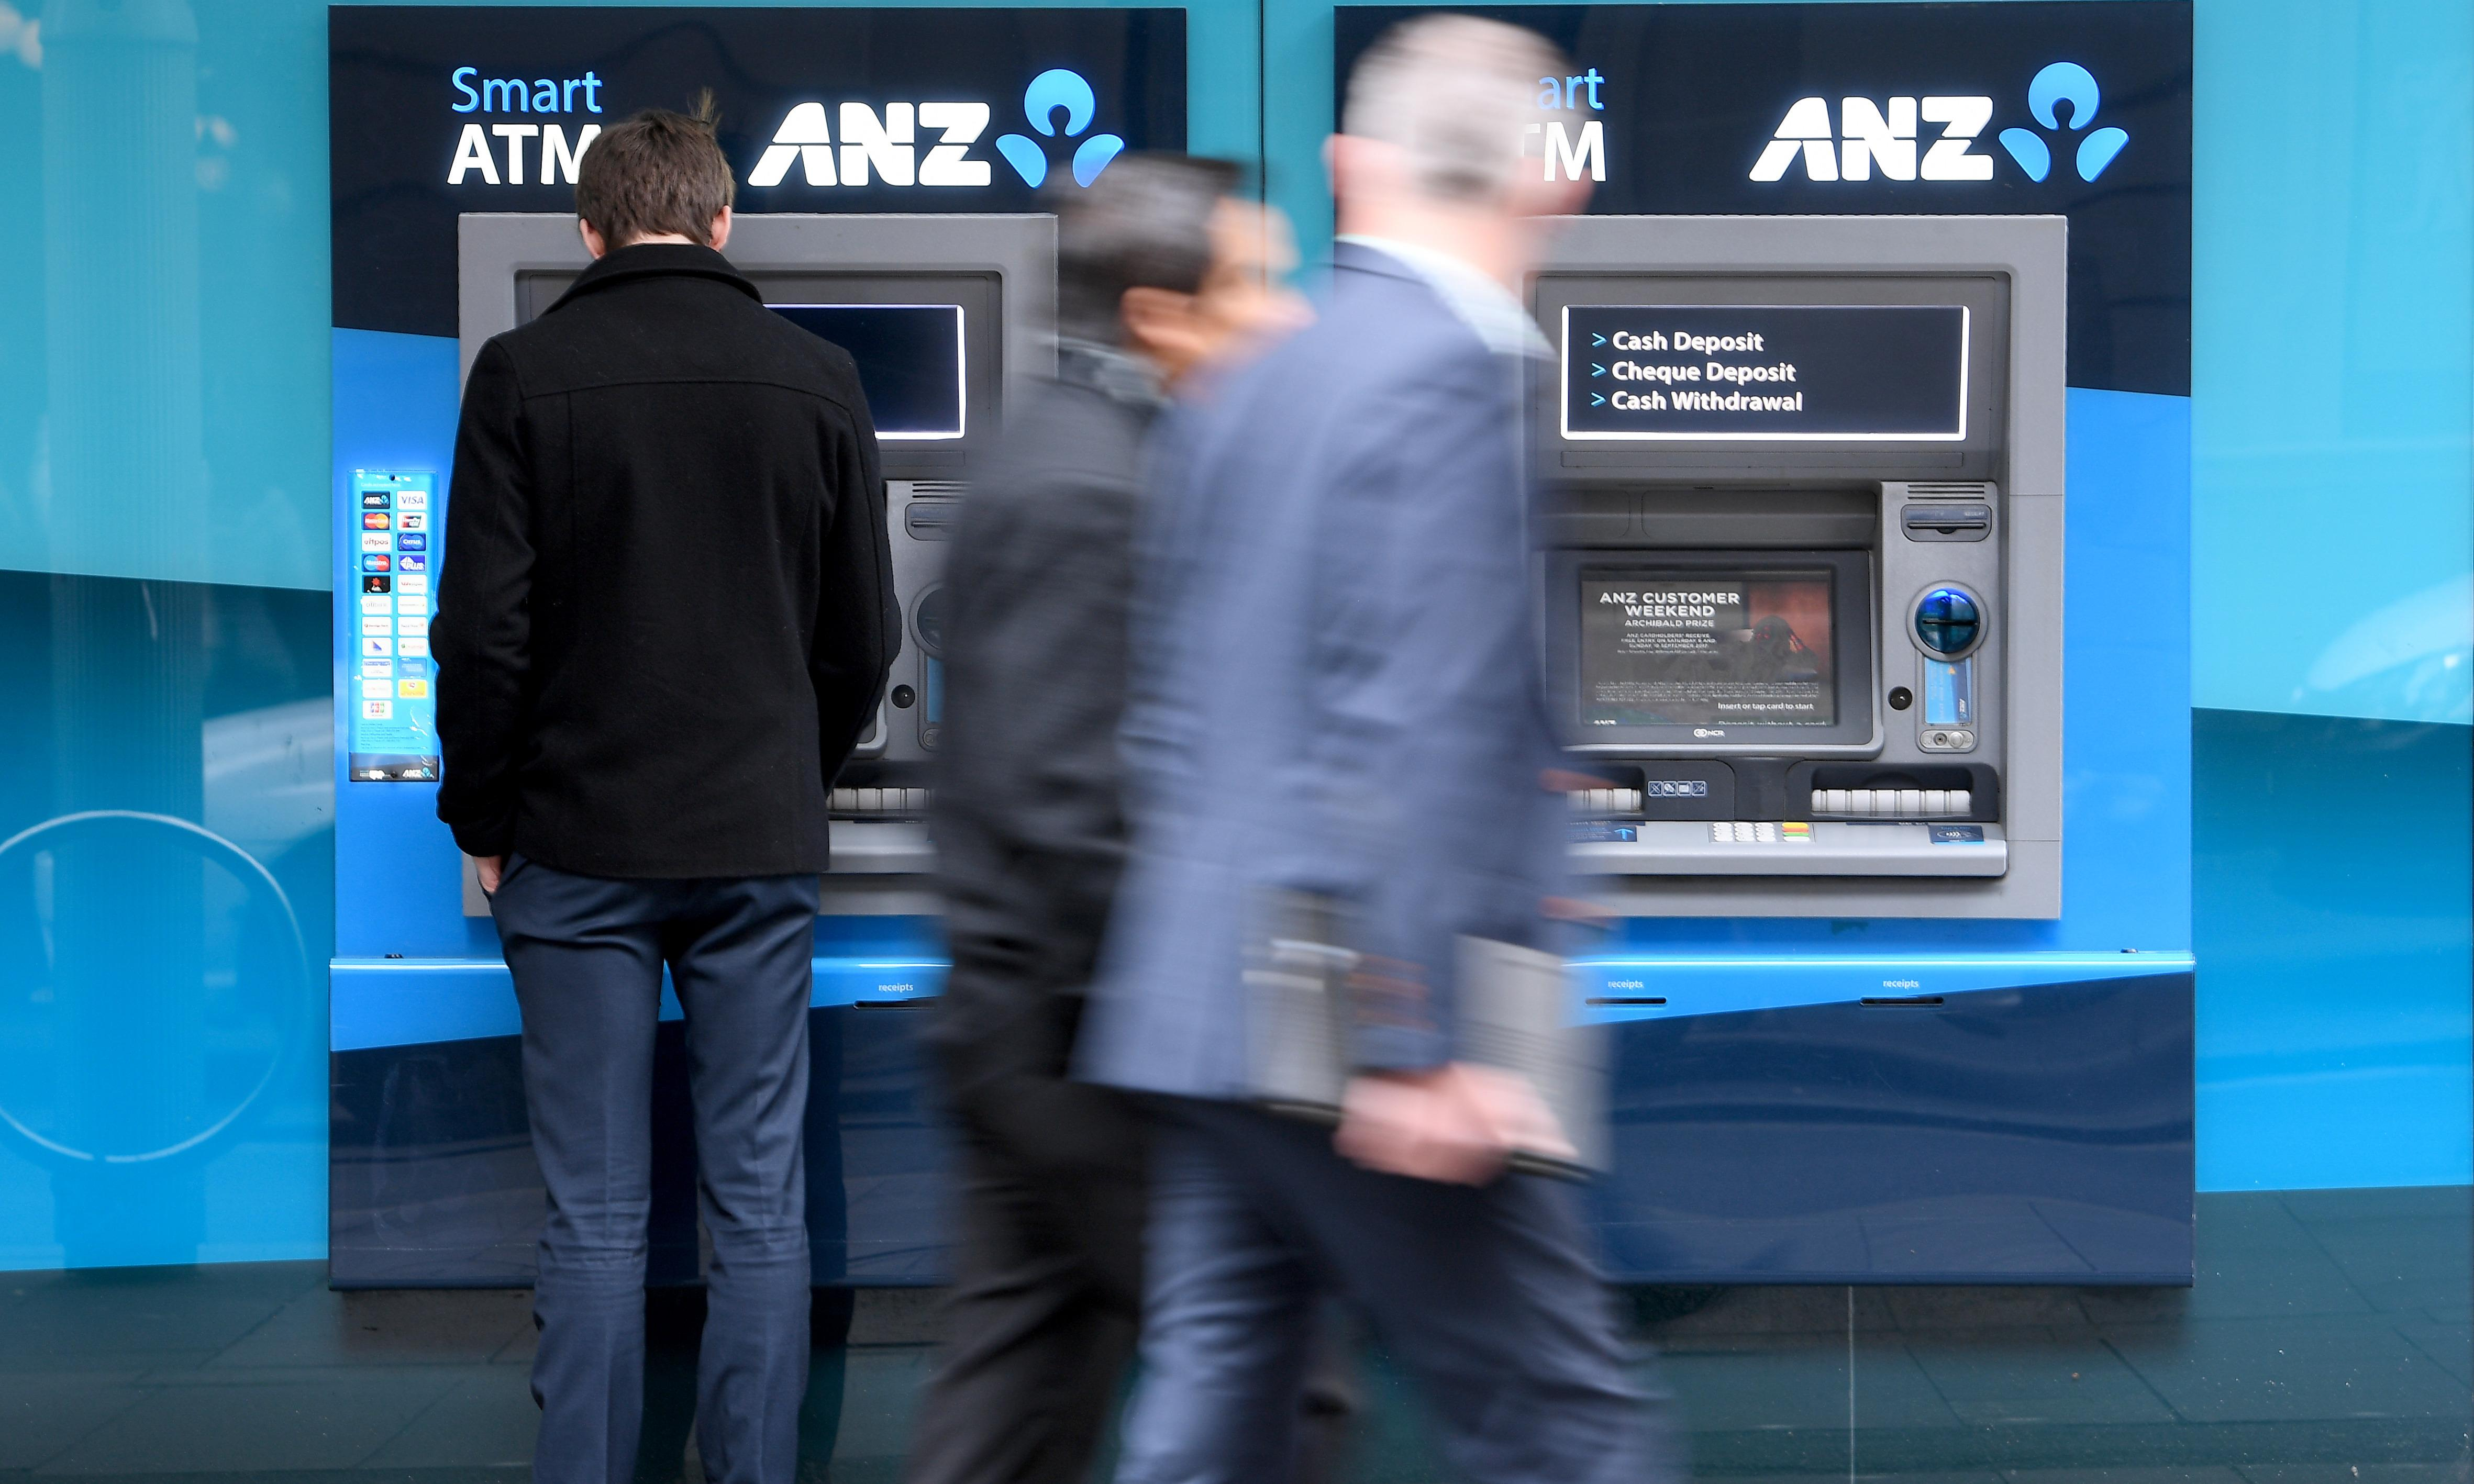 Wine and chauffeurs: ANZ under pressure after NZ boss's $400,000 in expenses revealed